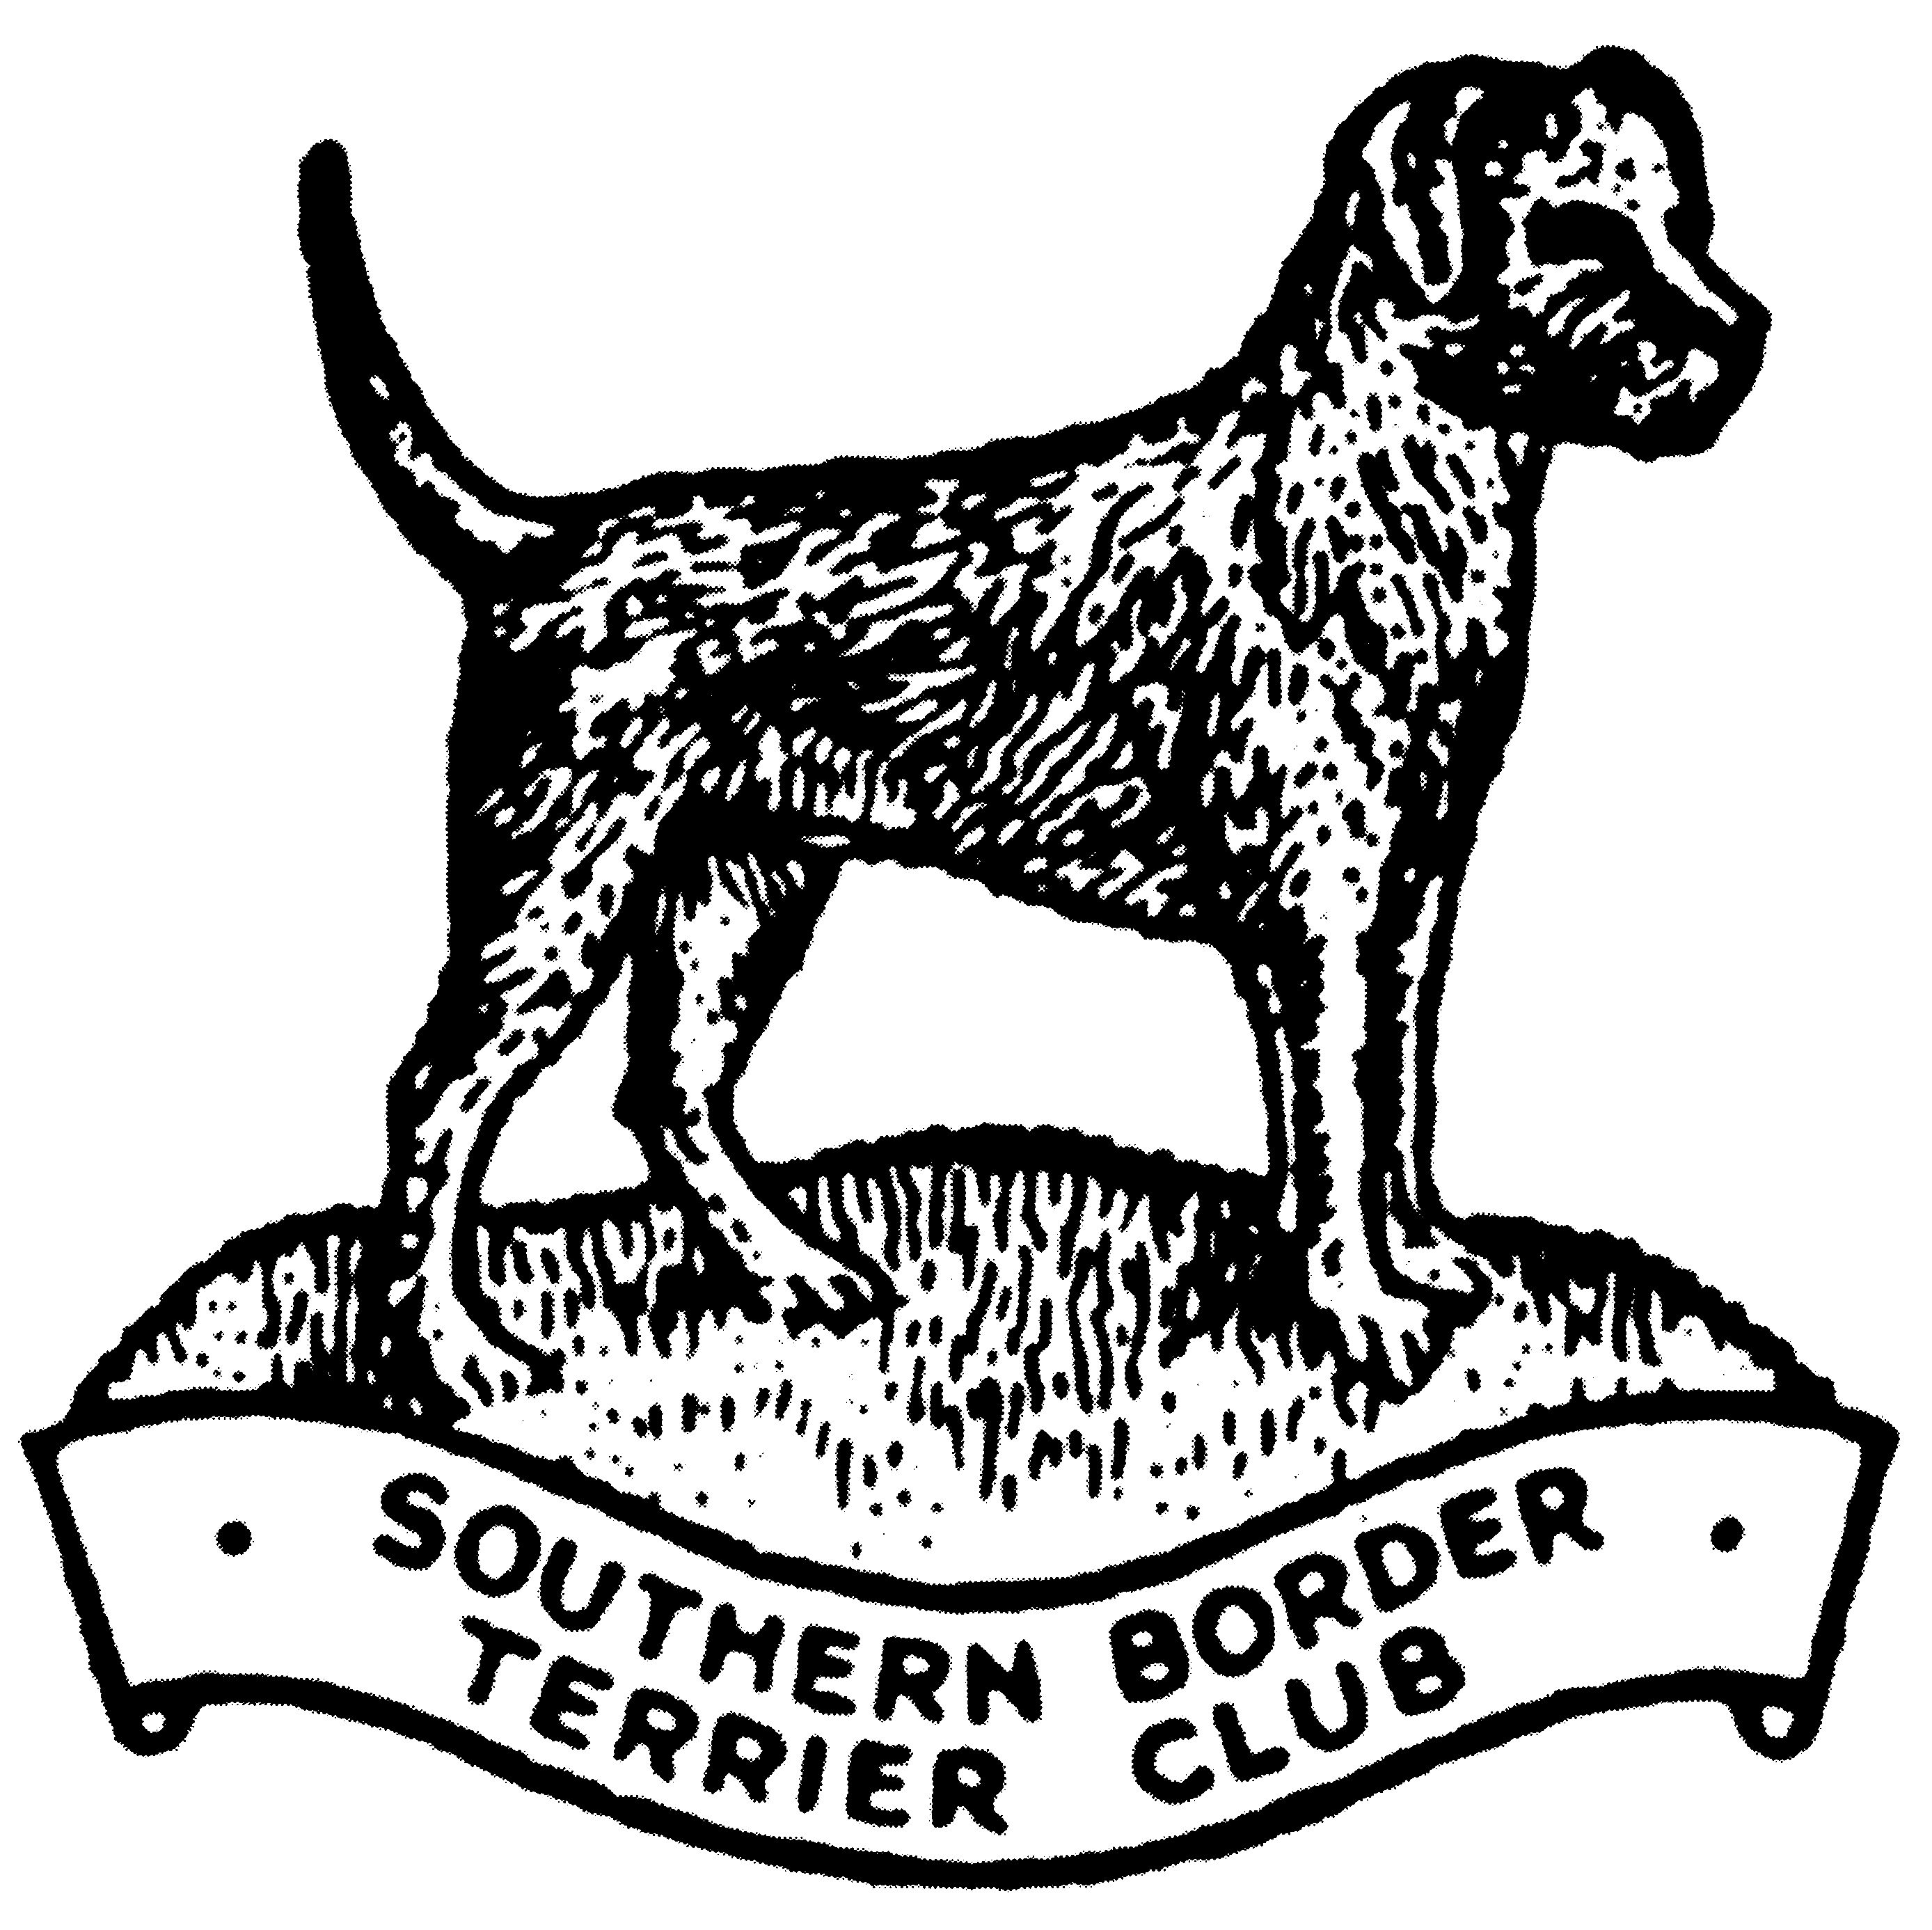 SOUTHERN BORDER TERRIER CLUB - September Ch Show